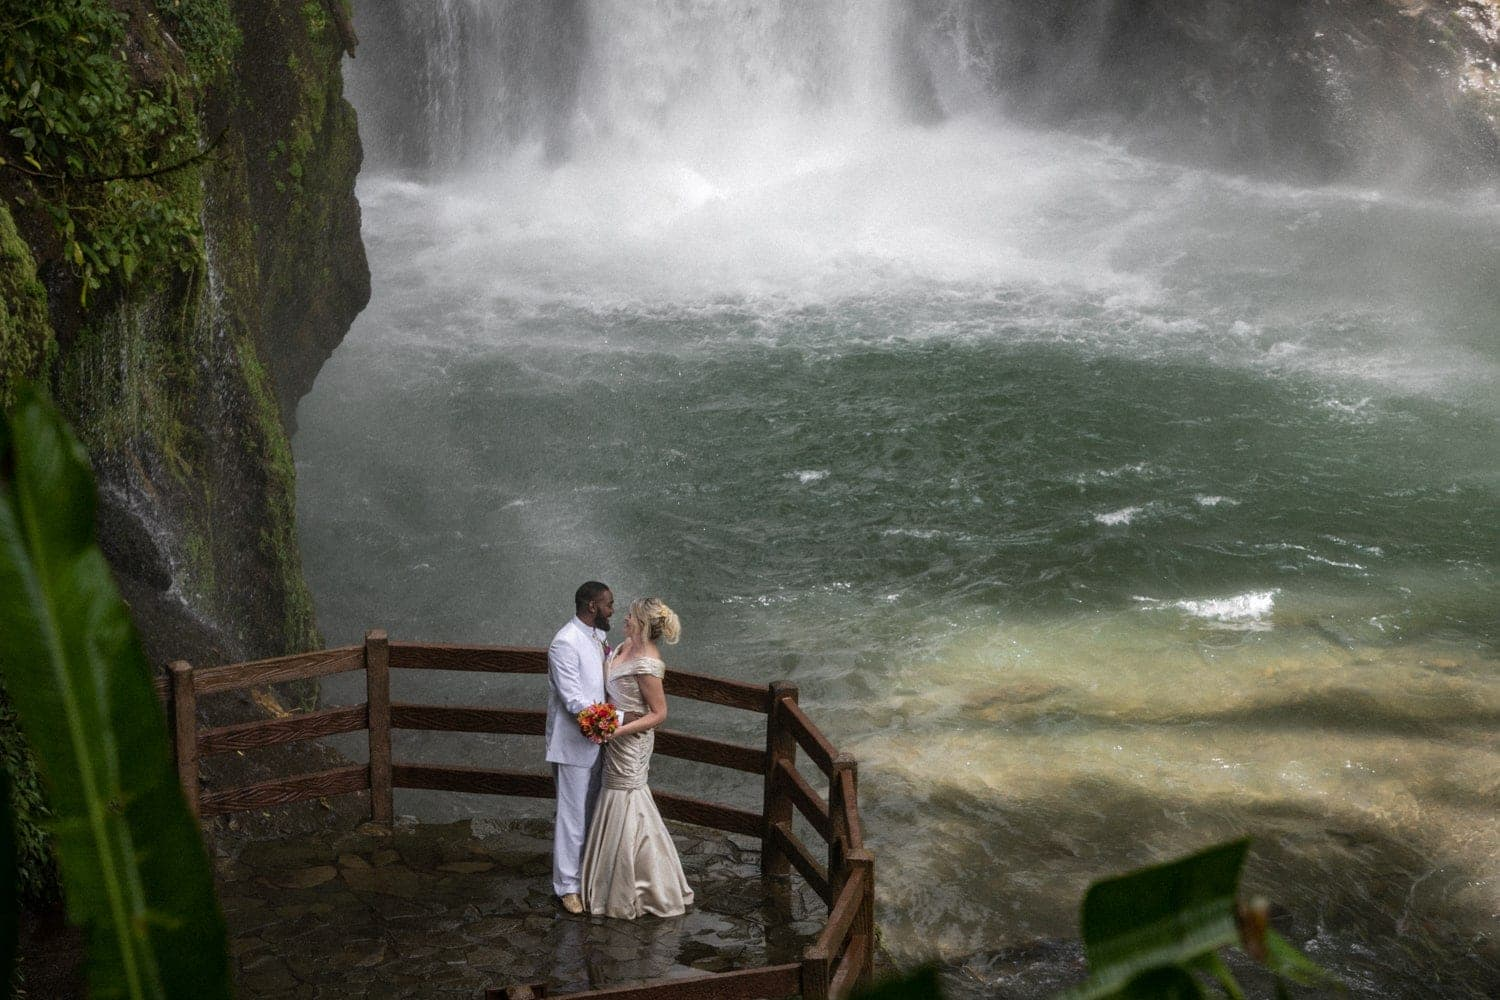 Dramatic photo of bride and groom near base of waterfall after wedding ceremony.